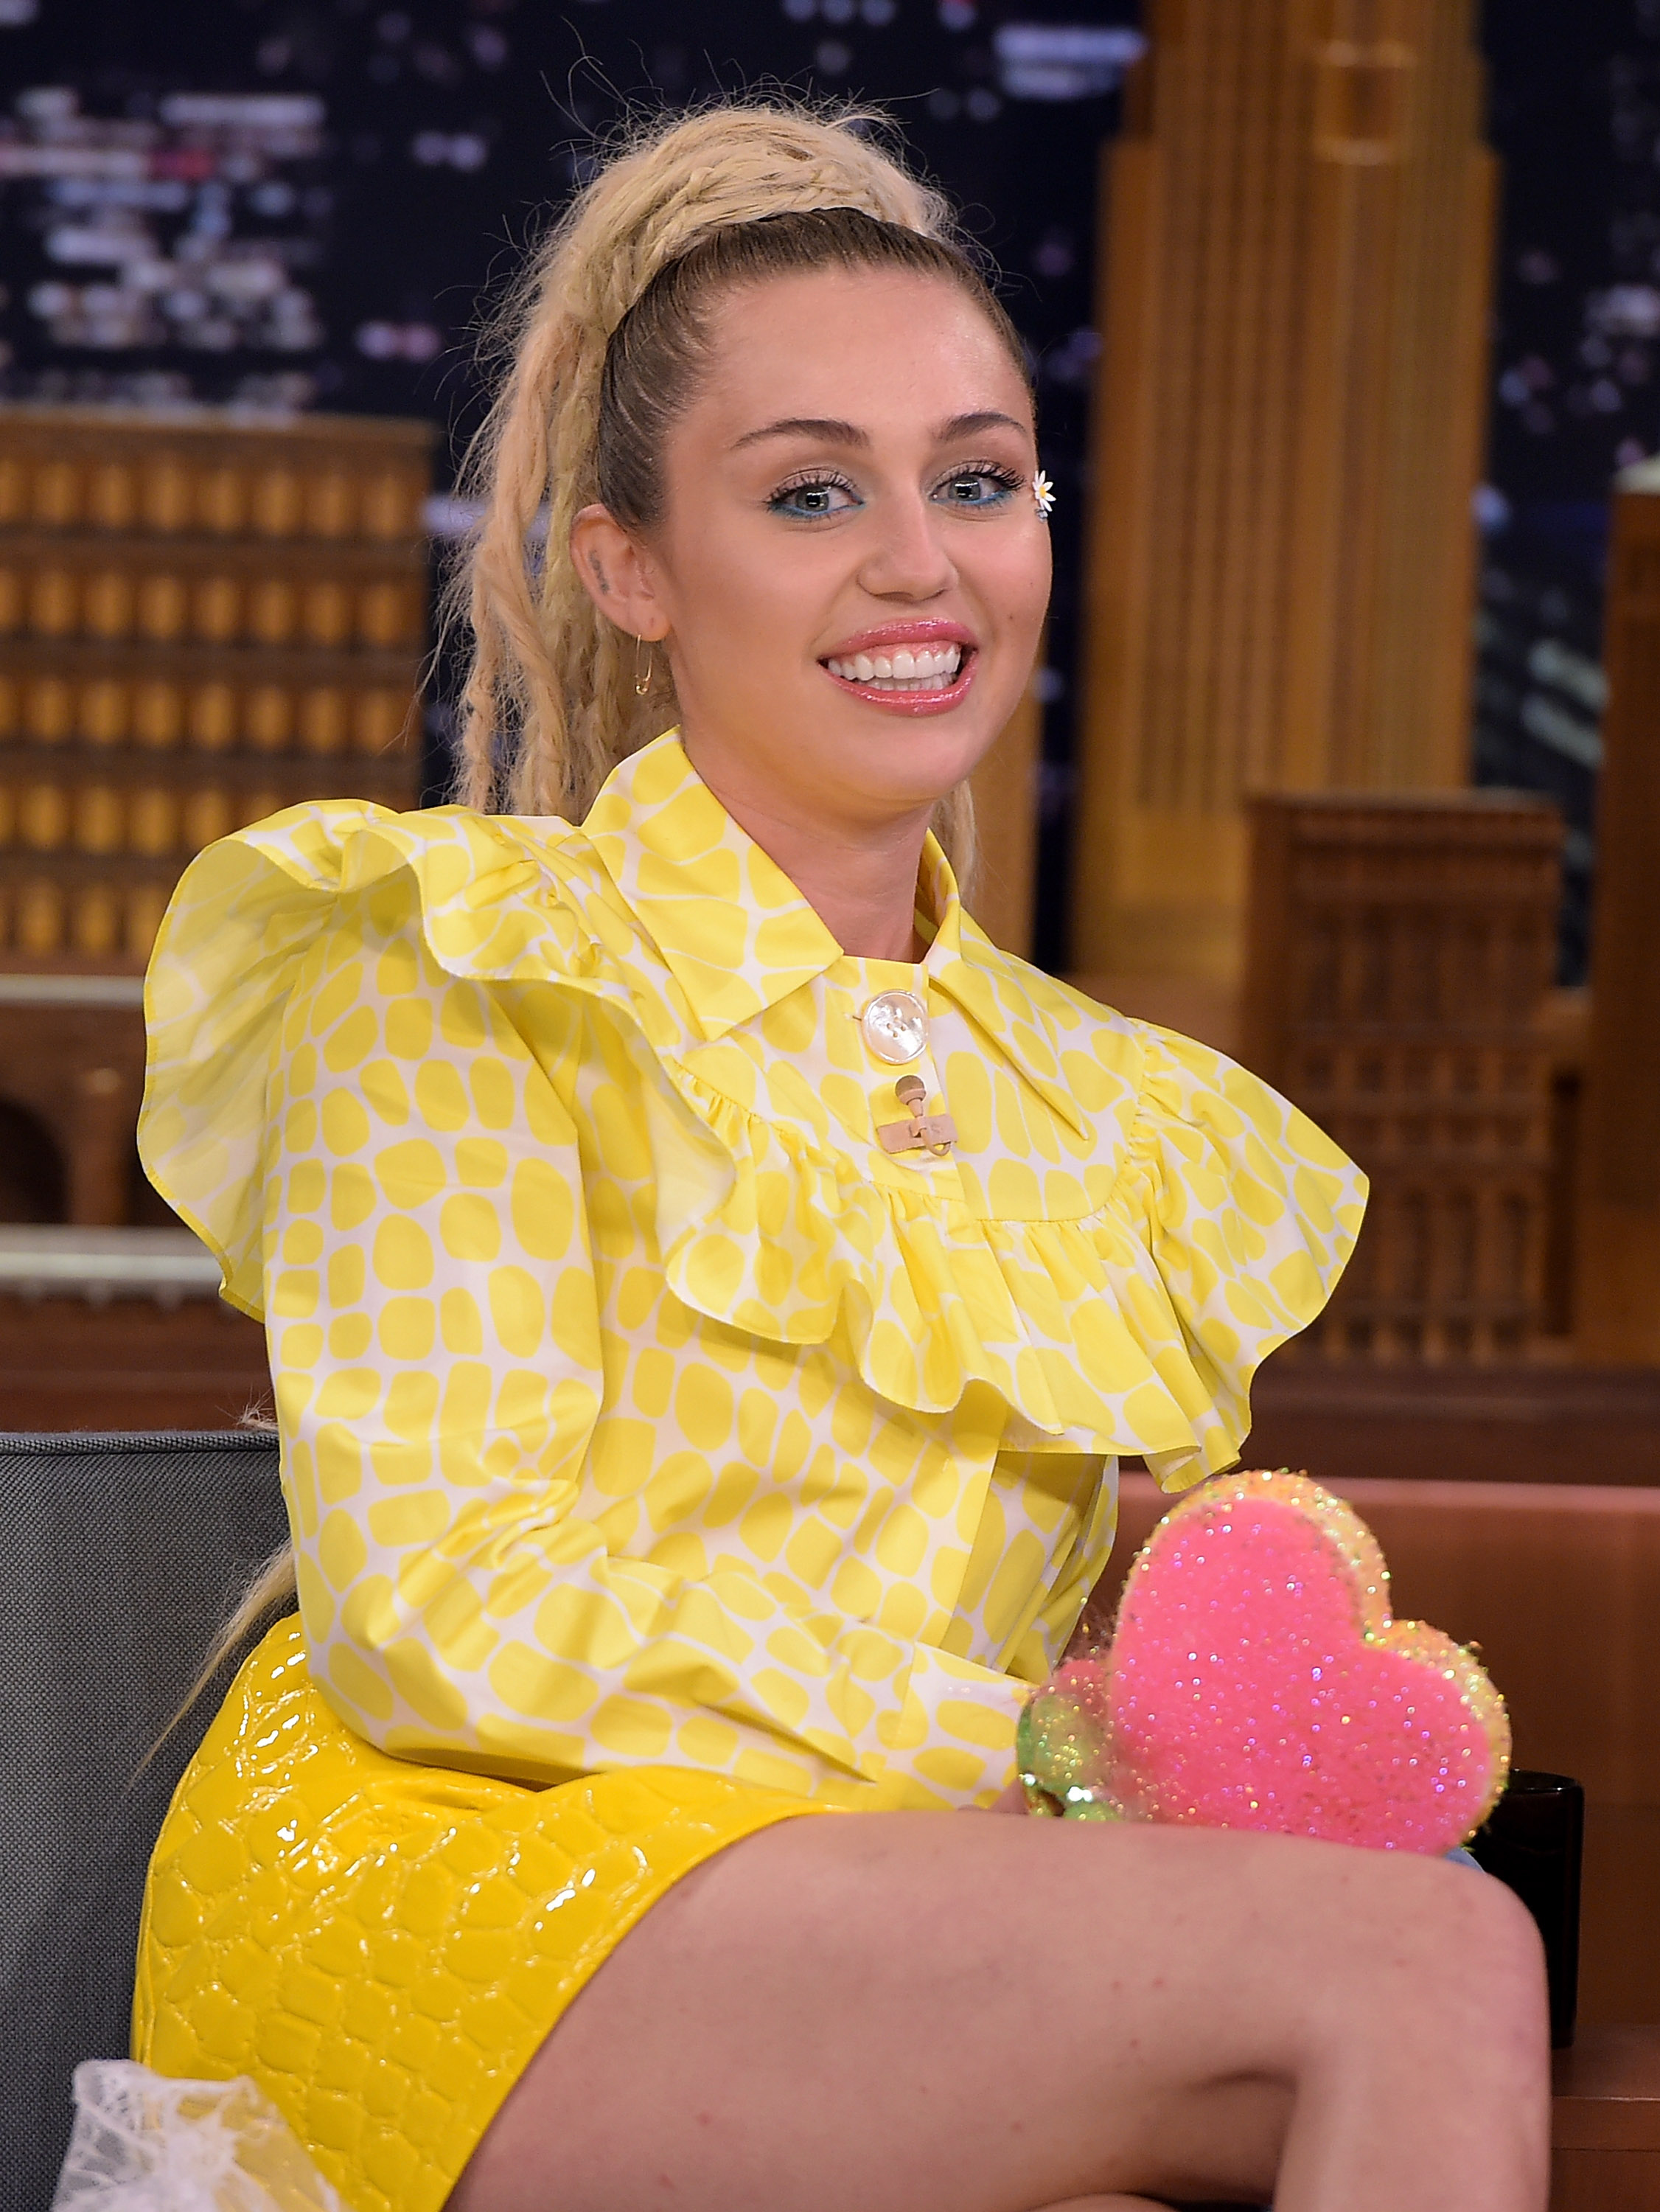 Miley Cyrus at  The Tonight Show Starring Jimmy Fallon  in New York City on Oct. 1, 2015.